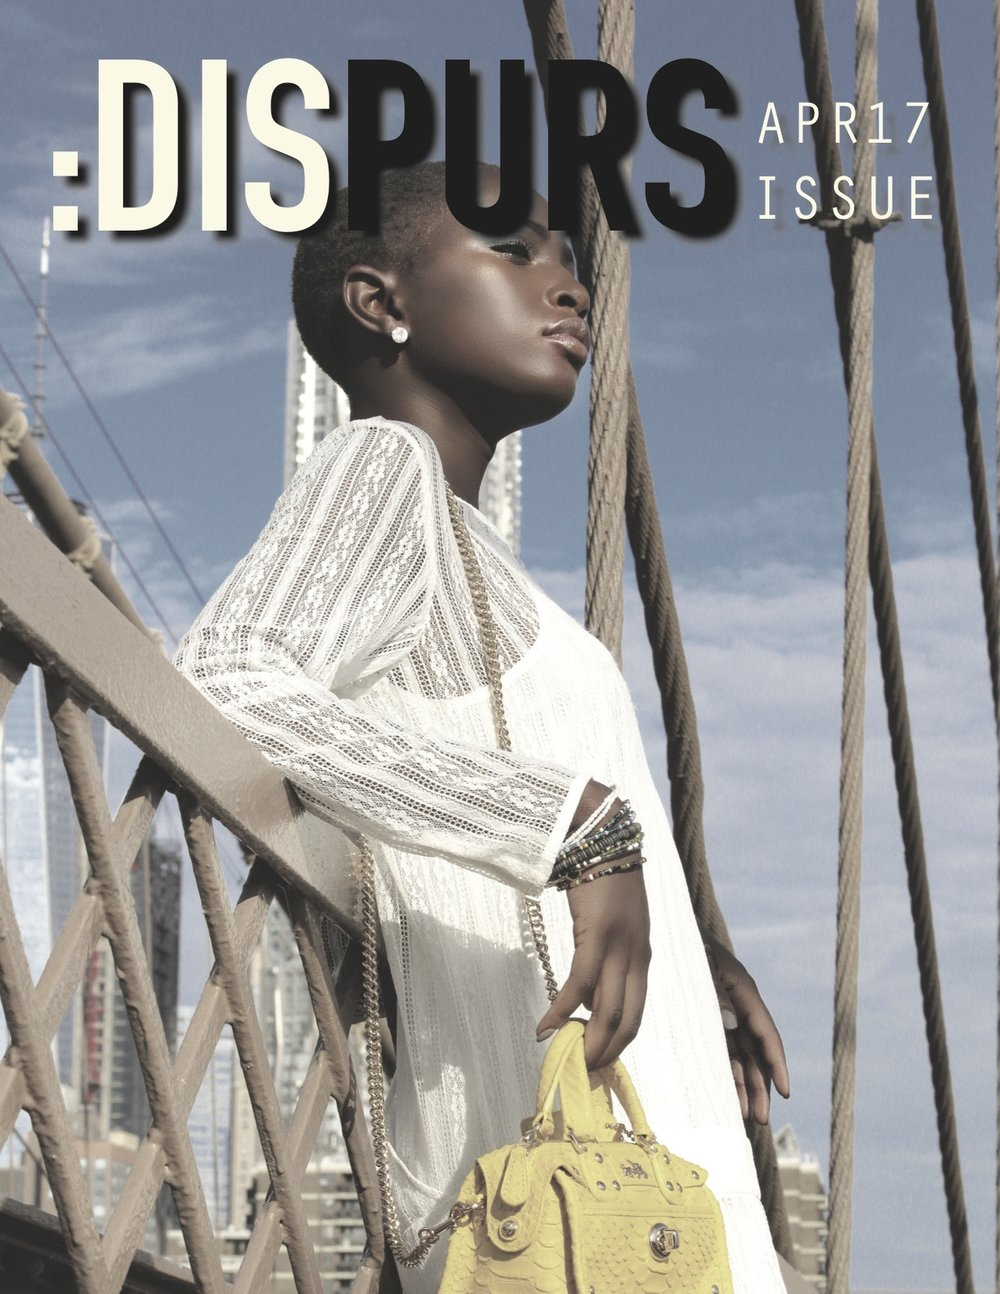 :DISPURS April 2017 Issue